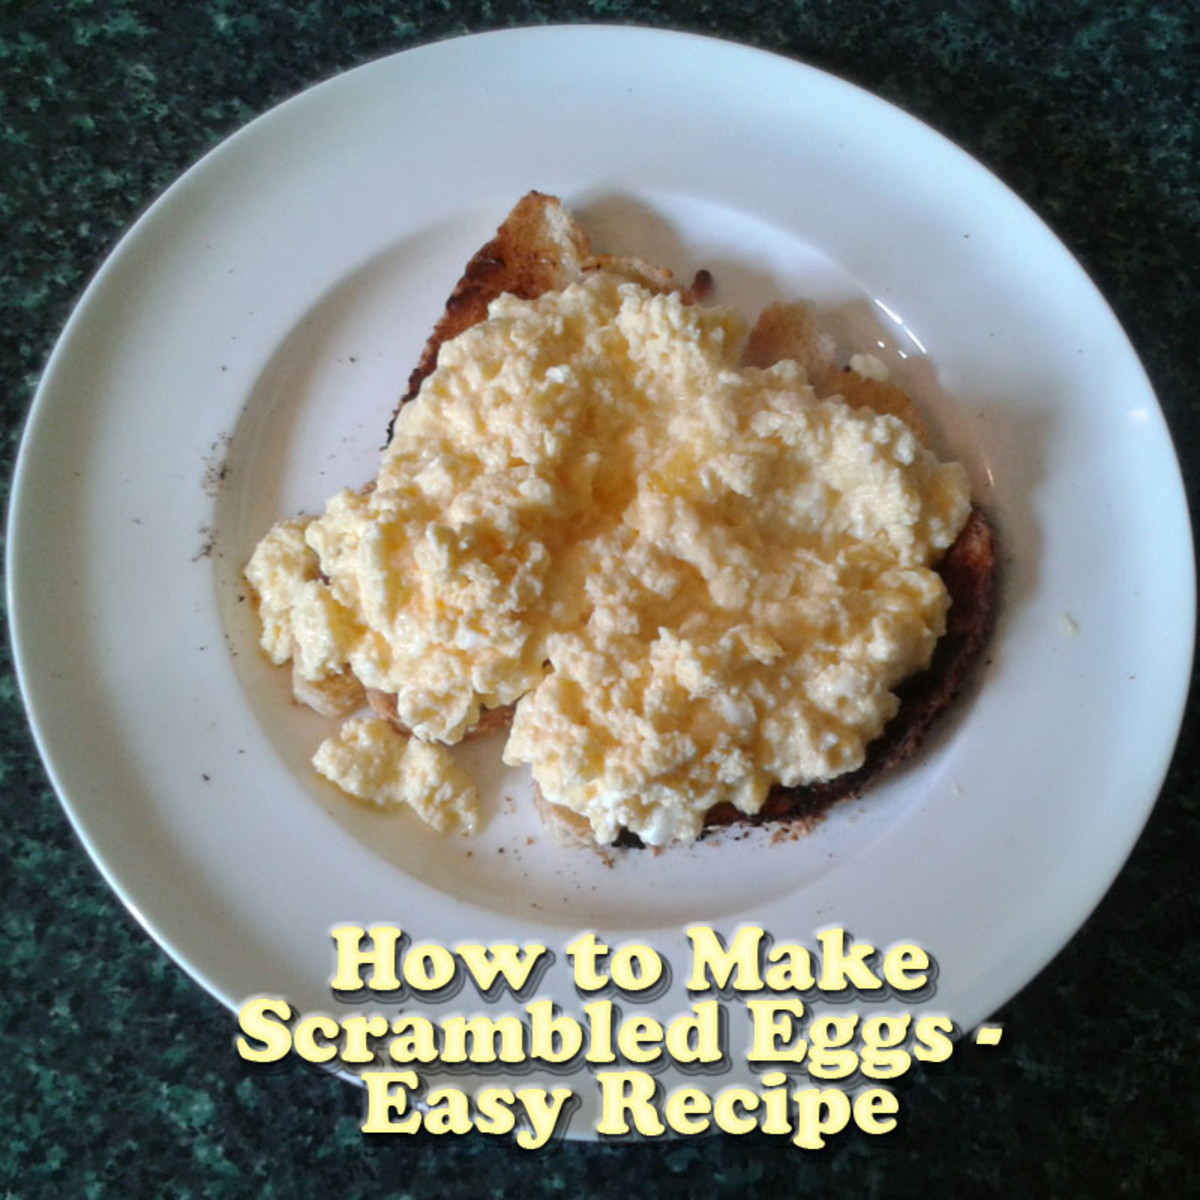 How to Make Scrambled Eggs - Easy Recipe